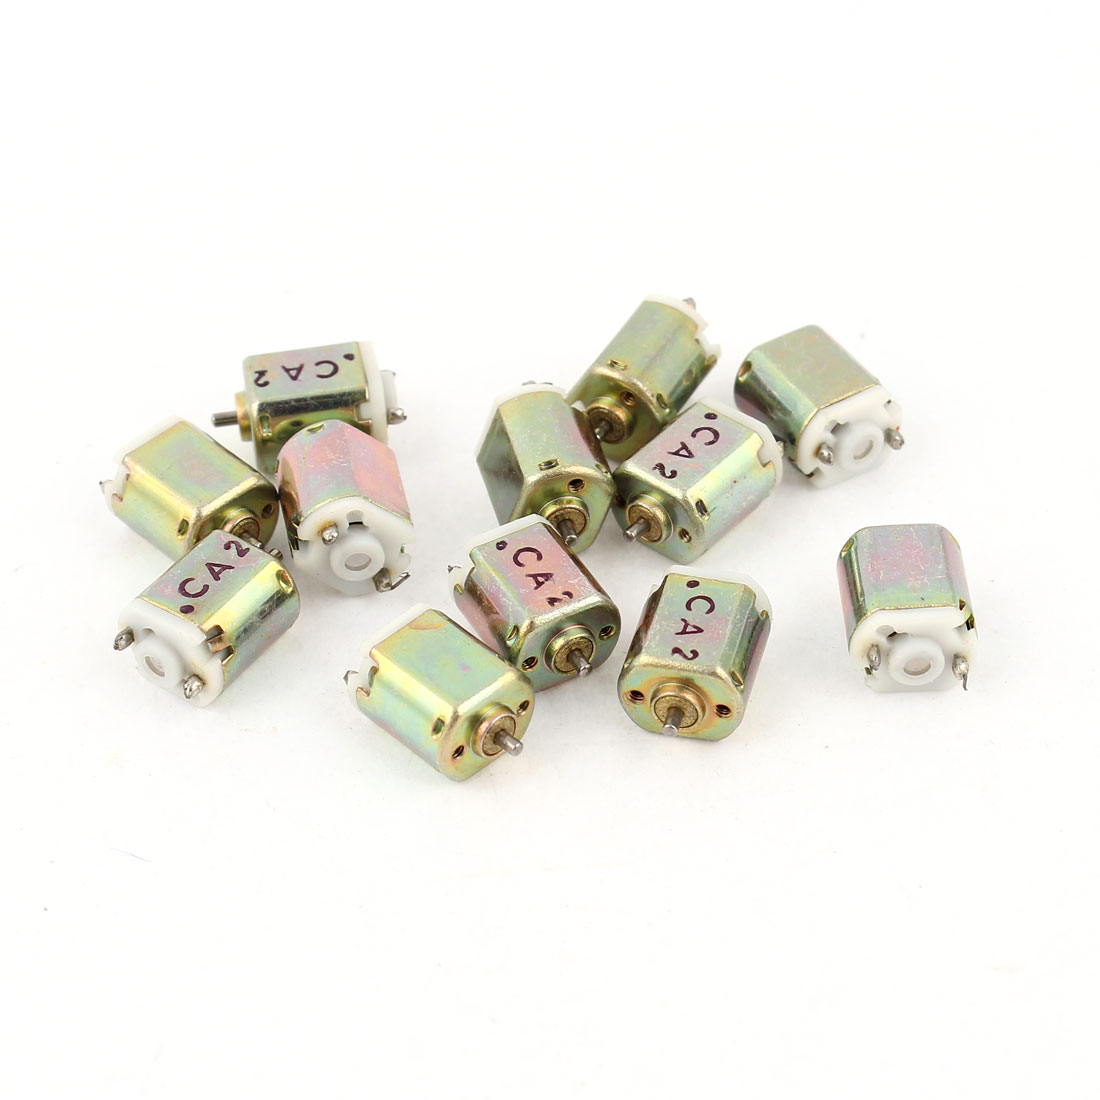 12 Pcs DC 1.5V 0.05A Brushless 2-Wires Mini Motor 20000RMP 6.5x8mm